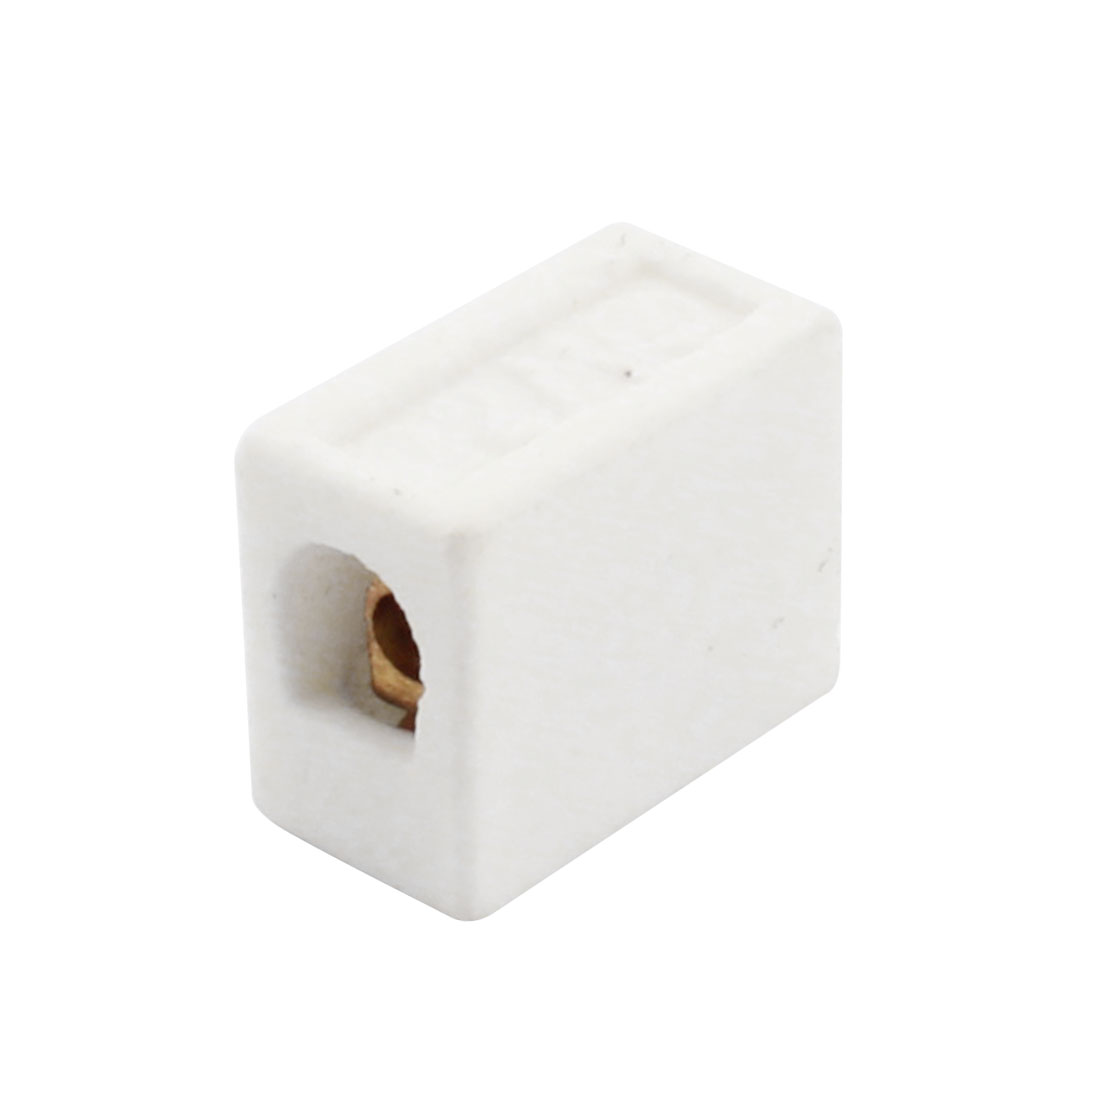 Connector Porcelain Ceramic Terminal Block 2 Way 2 Hole AC 250V 425C